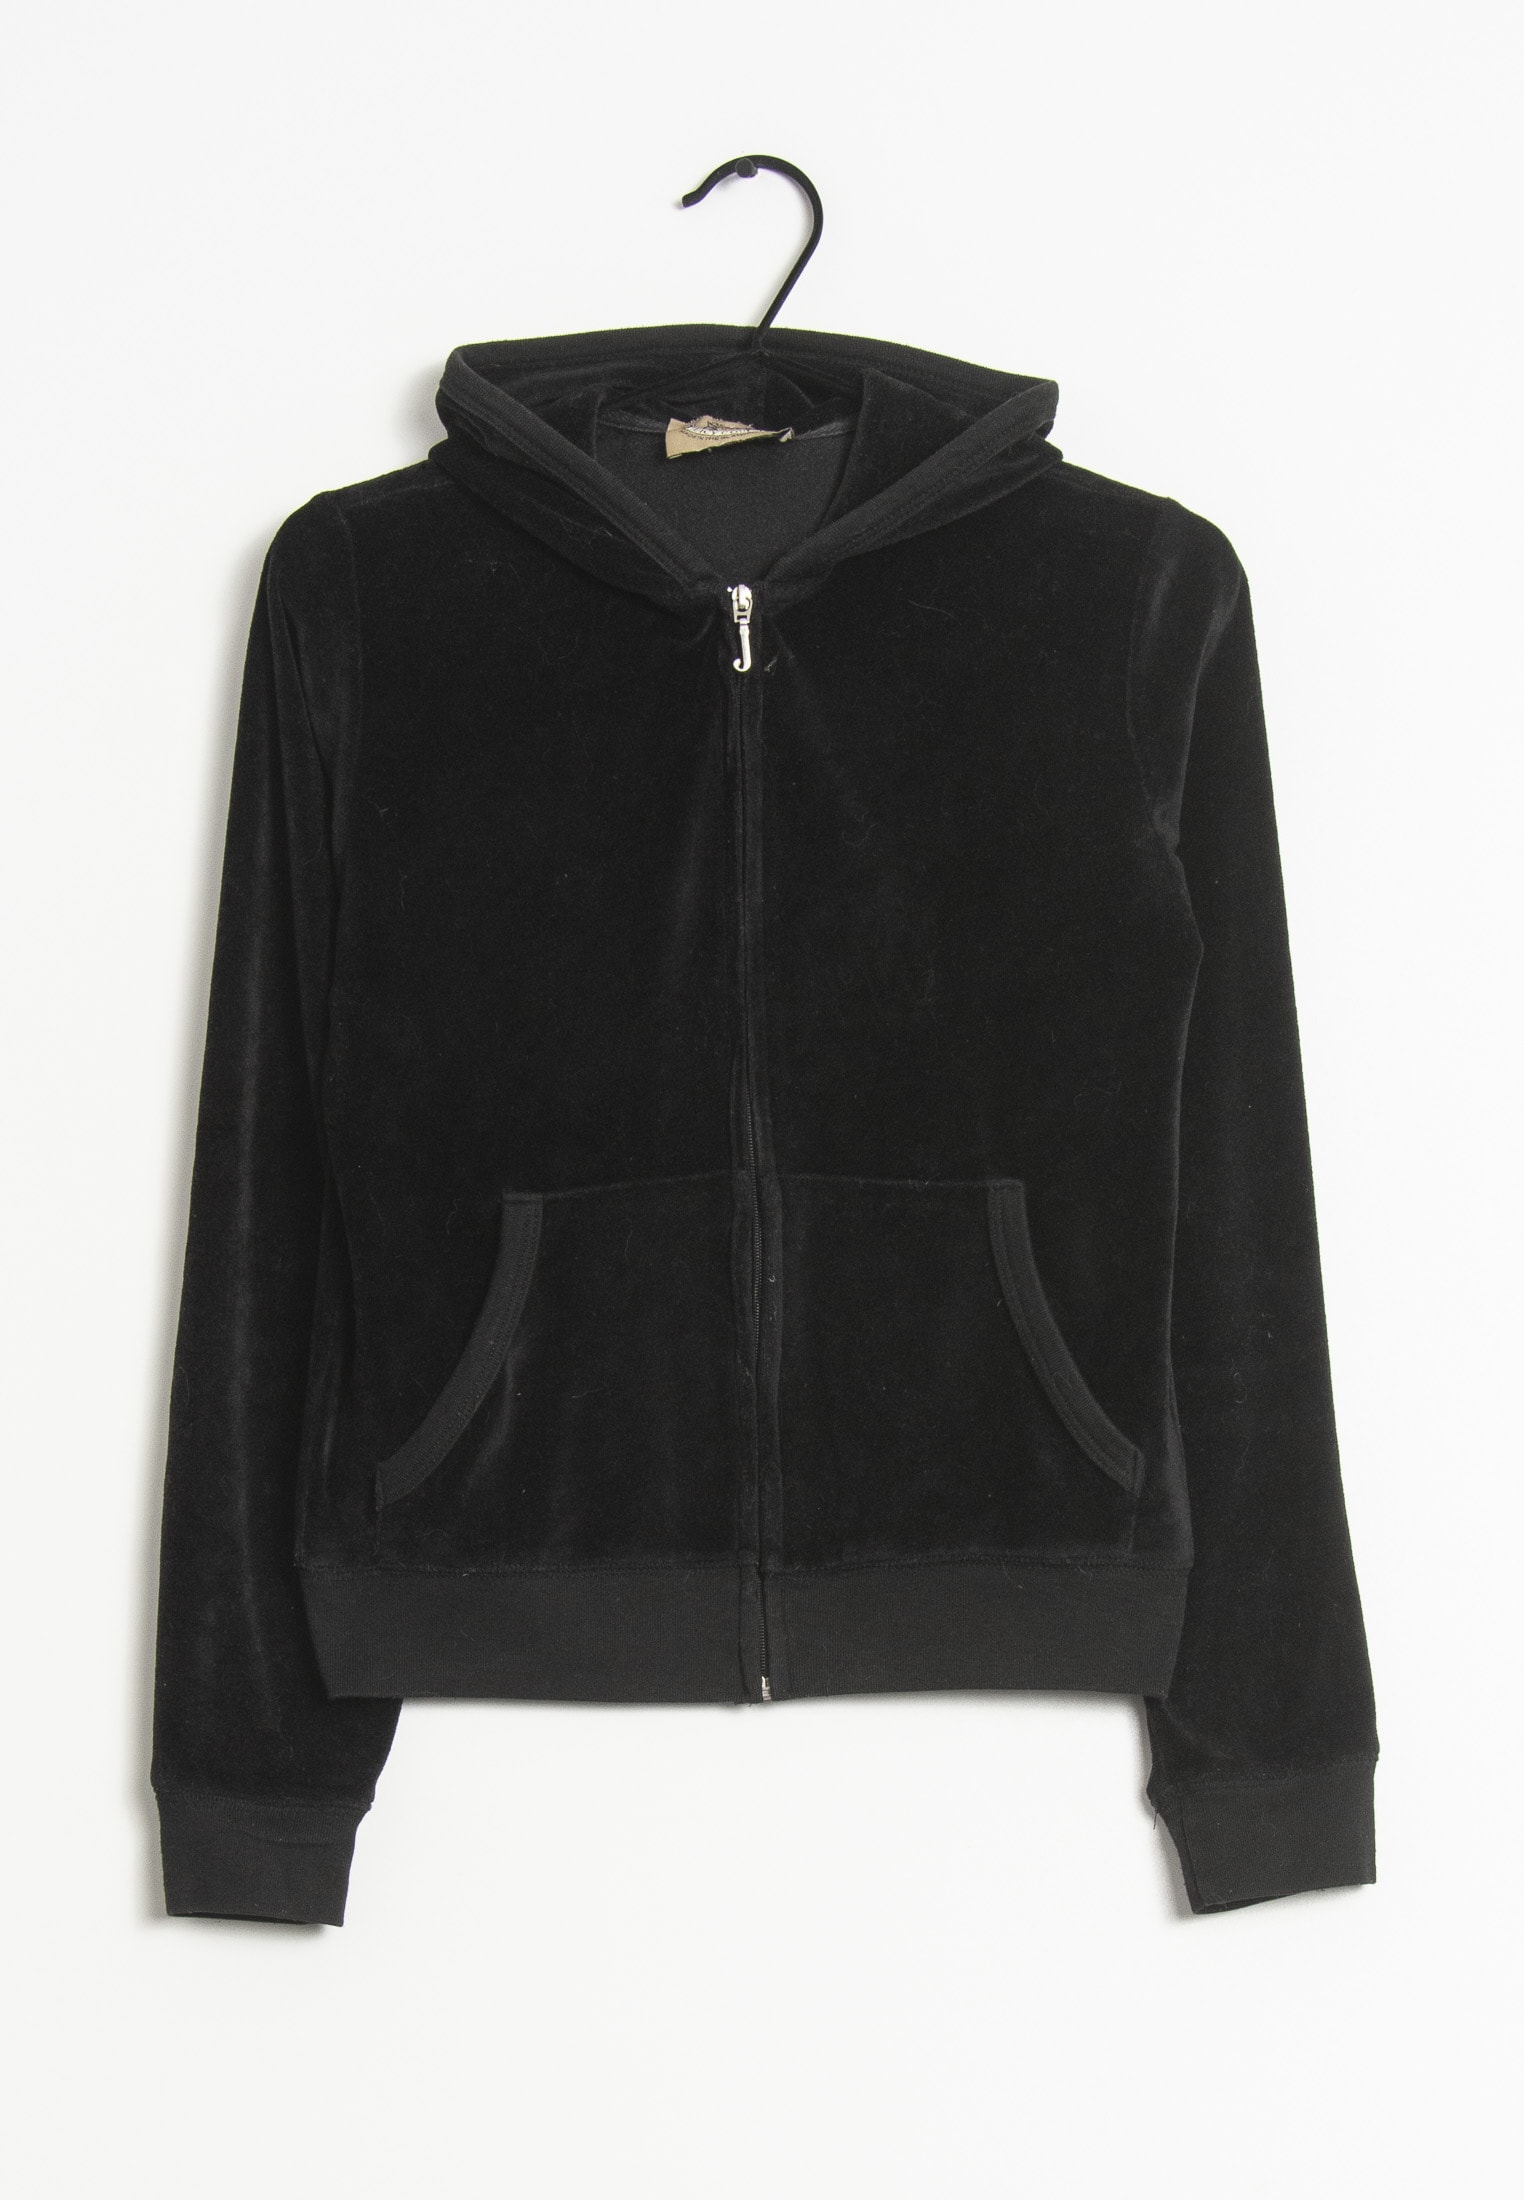 Juicy Couture Sweat / Fleece Schwarz Gr.M